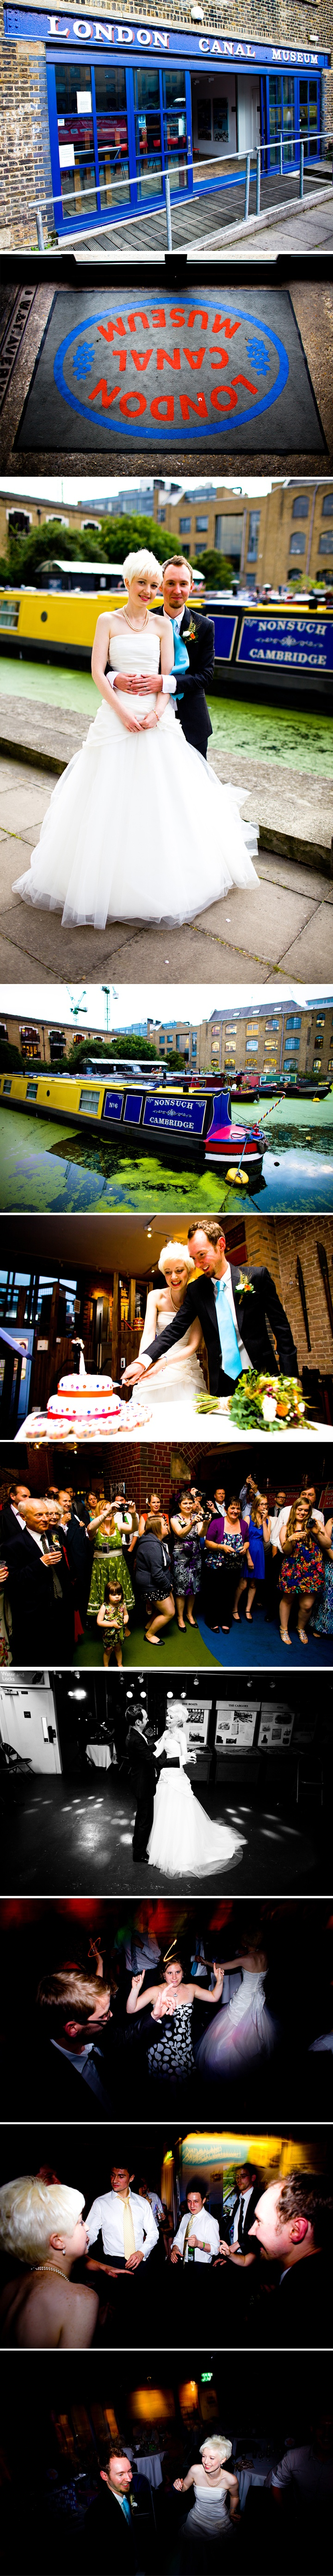 small wedding hotels london%0A London canal museum wedding photographer London Canal Muesum wedding  photographer    Documentary wedding photography